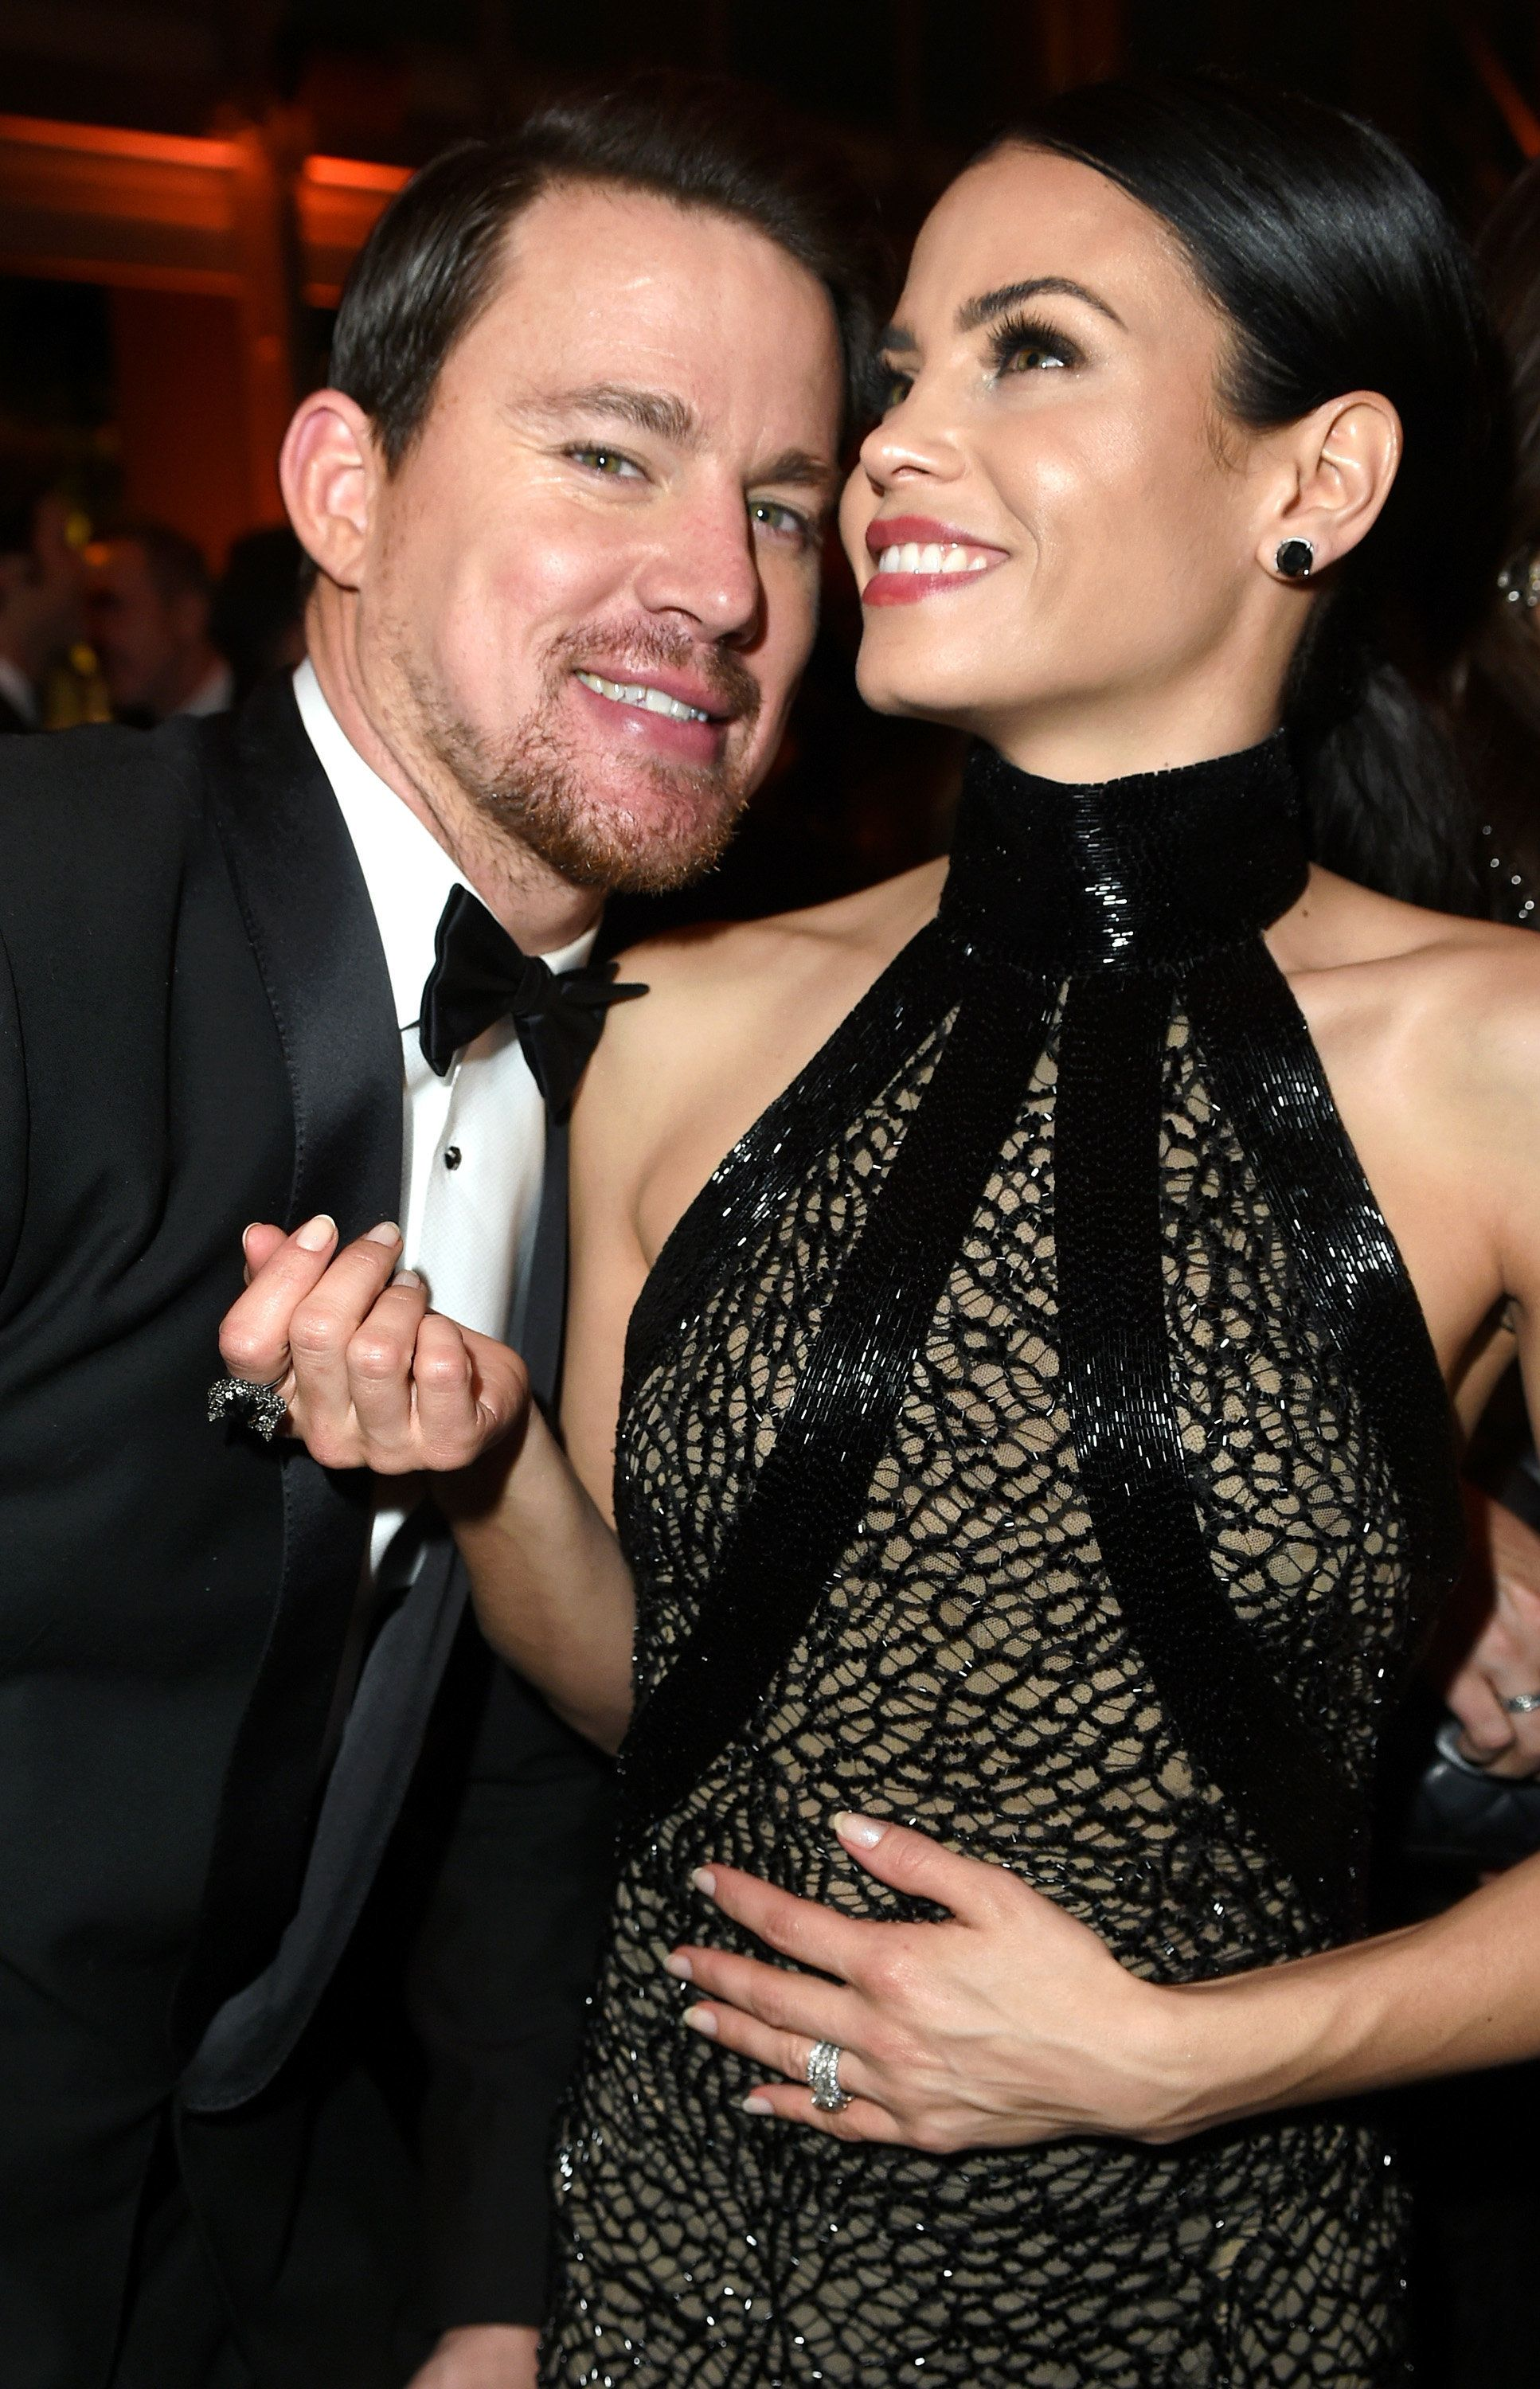 BEVERLY HILLS, CA - FEBRUARY 22:  (EXCLUSIVE ACCESS, SPECIAL RATES APPLY) Actors Channing Tatum (L) and Jenna Dewan Tatum attend the 2015 Vanity Fair Oscar Party hosted by Graydon Carter at the Wallis Annenberg Center for the Performing Arts on February 22, 2015 in Beverly Hills, California.  (Photo by Jeff Vespa/VF15/WireImage)